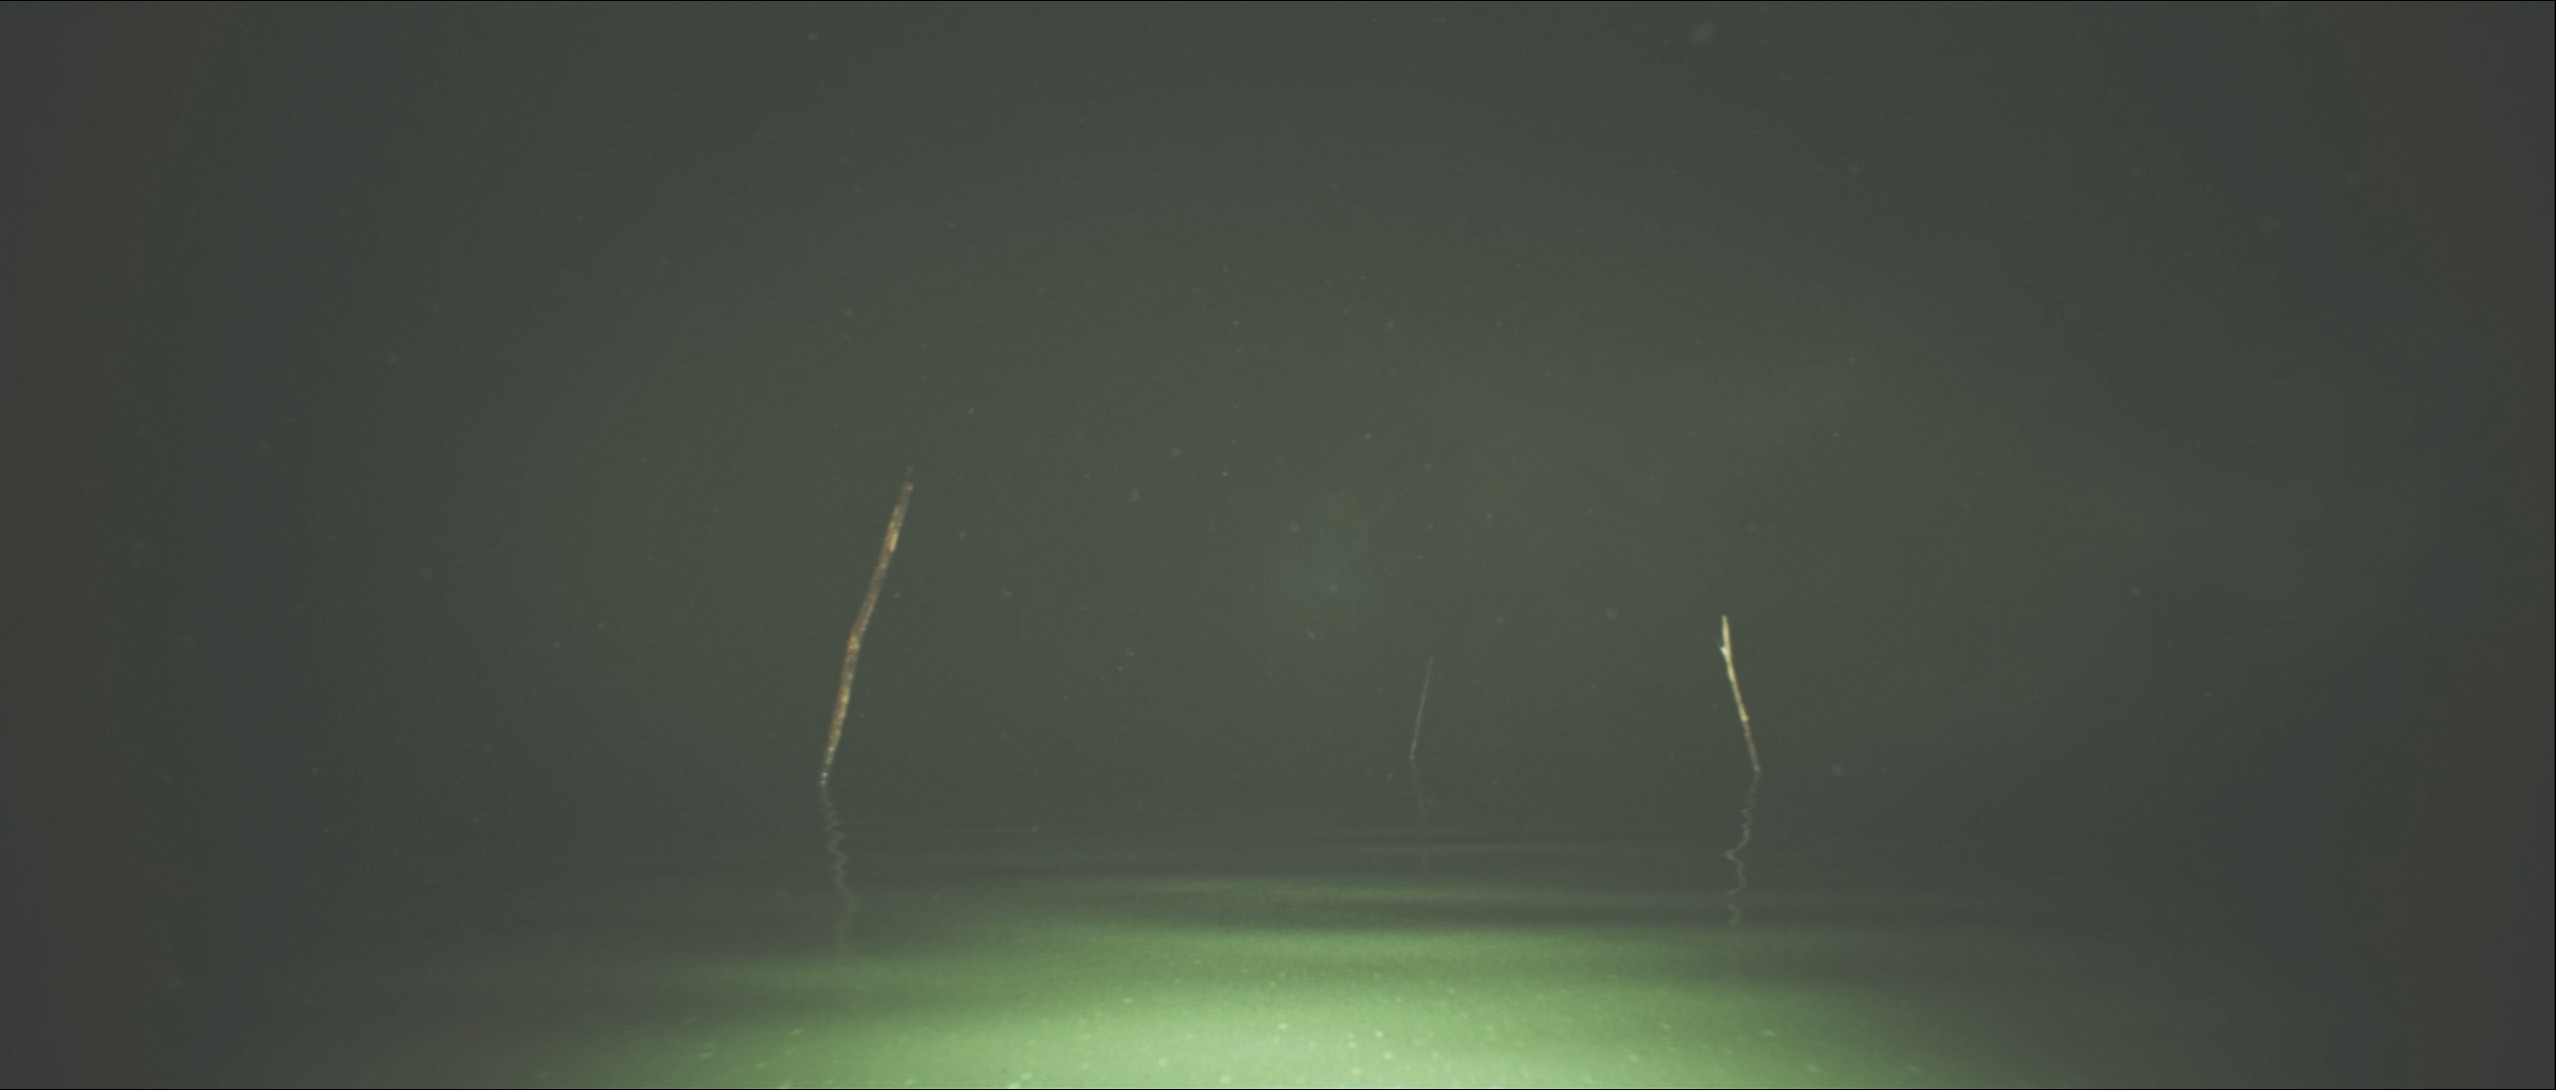 Still frame from the video